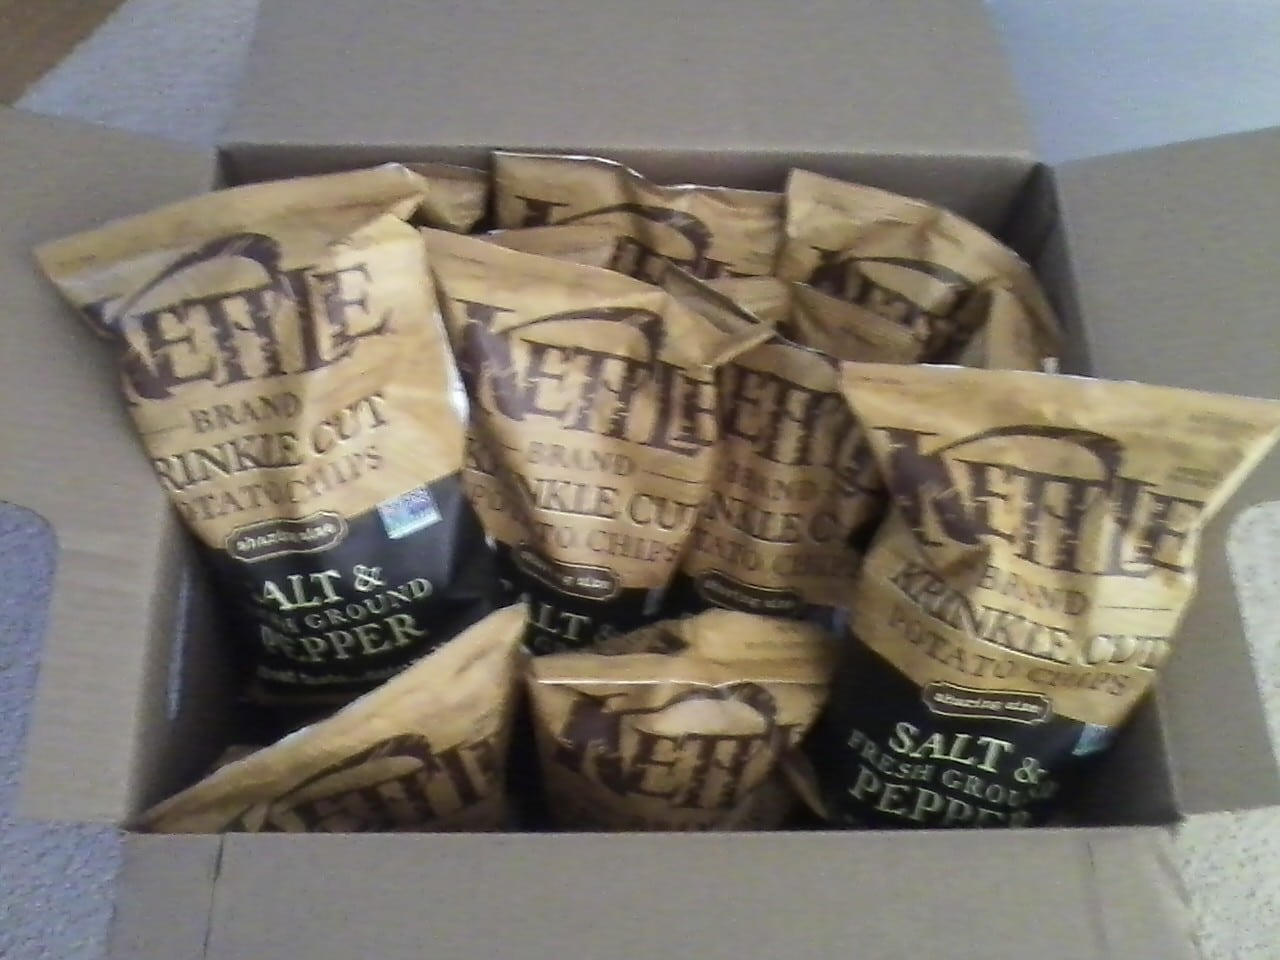 Kettle chips amazon warehouse 2